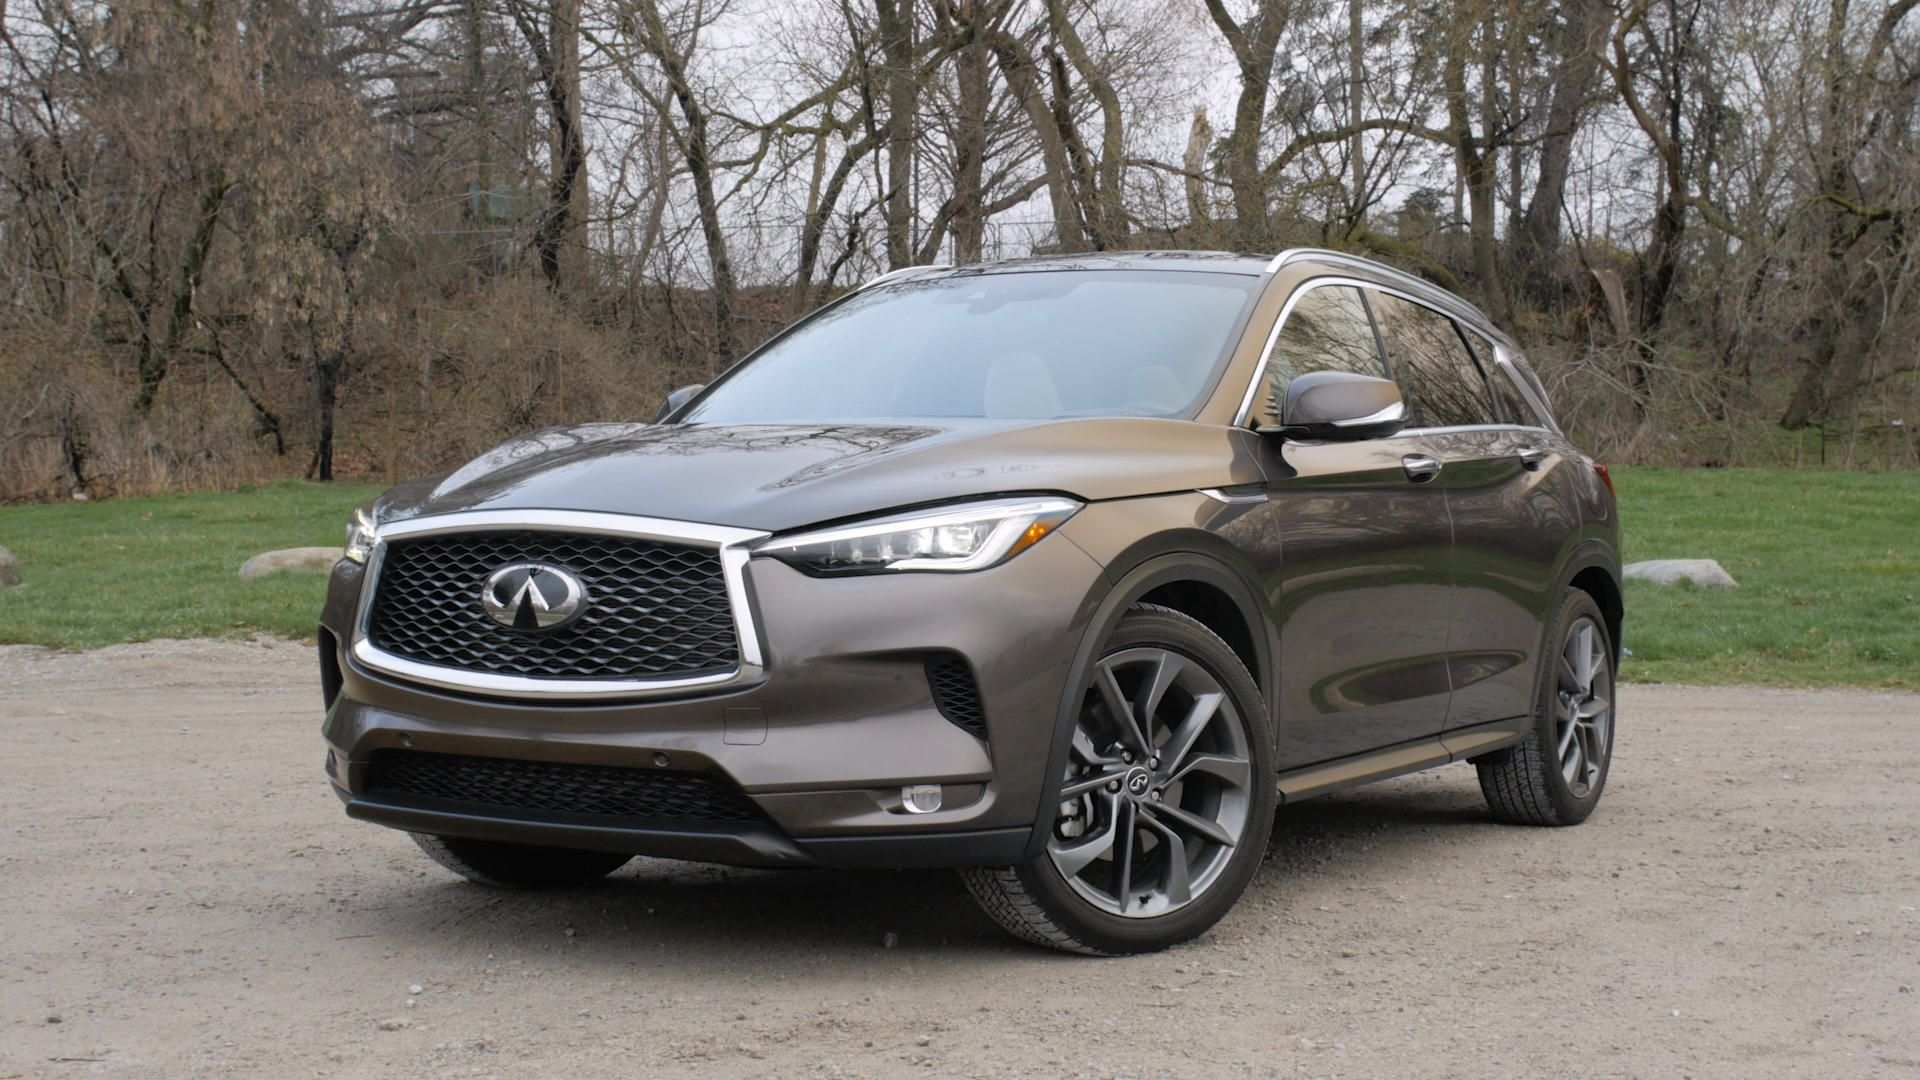 49 Gallery of The Infiniti Qx50 2019 Hybrid Concept Model with The Infiniti Qx50 2019 Hybrid Concept